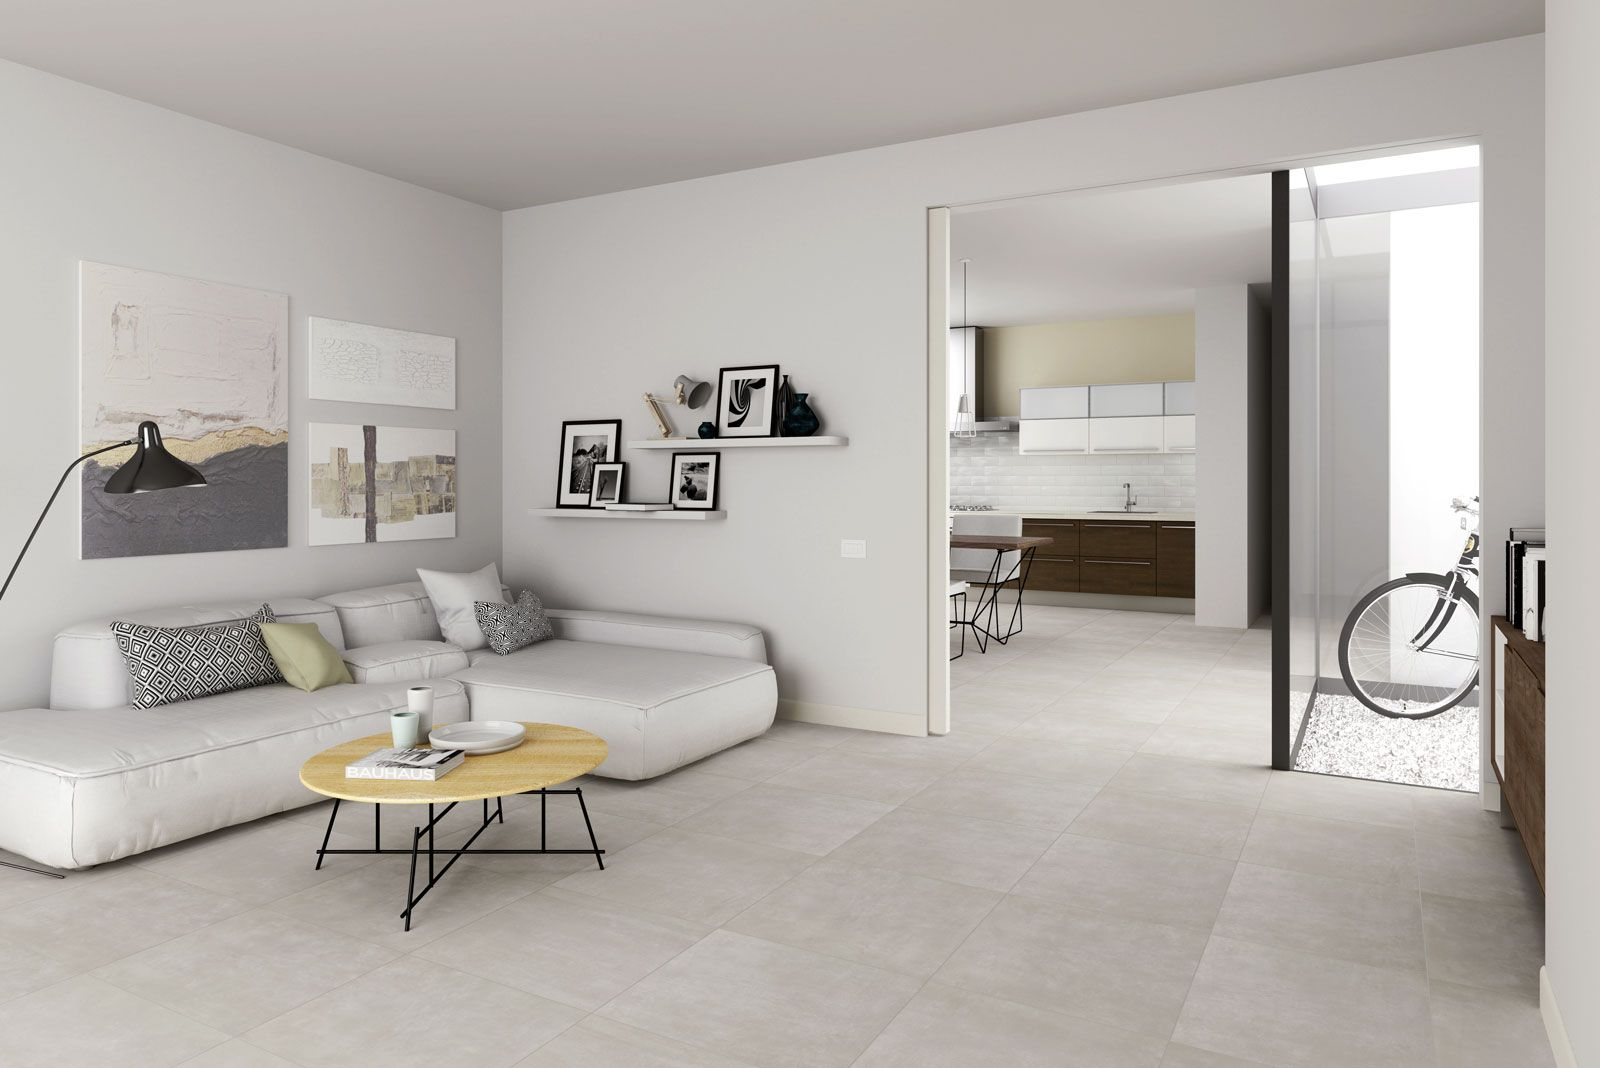 Marazzi Dust Cream 33 3x33 3 Cm Mmt7 Porcelain Stoneware Stone 33 3x33 3 On Bathroom39 Com At 20 Euro S Living Room Tiles Home Tile Floor Living Room